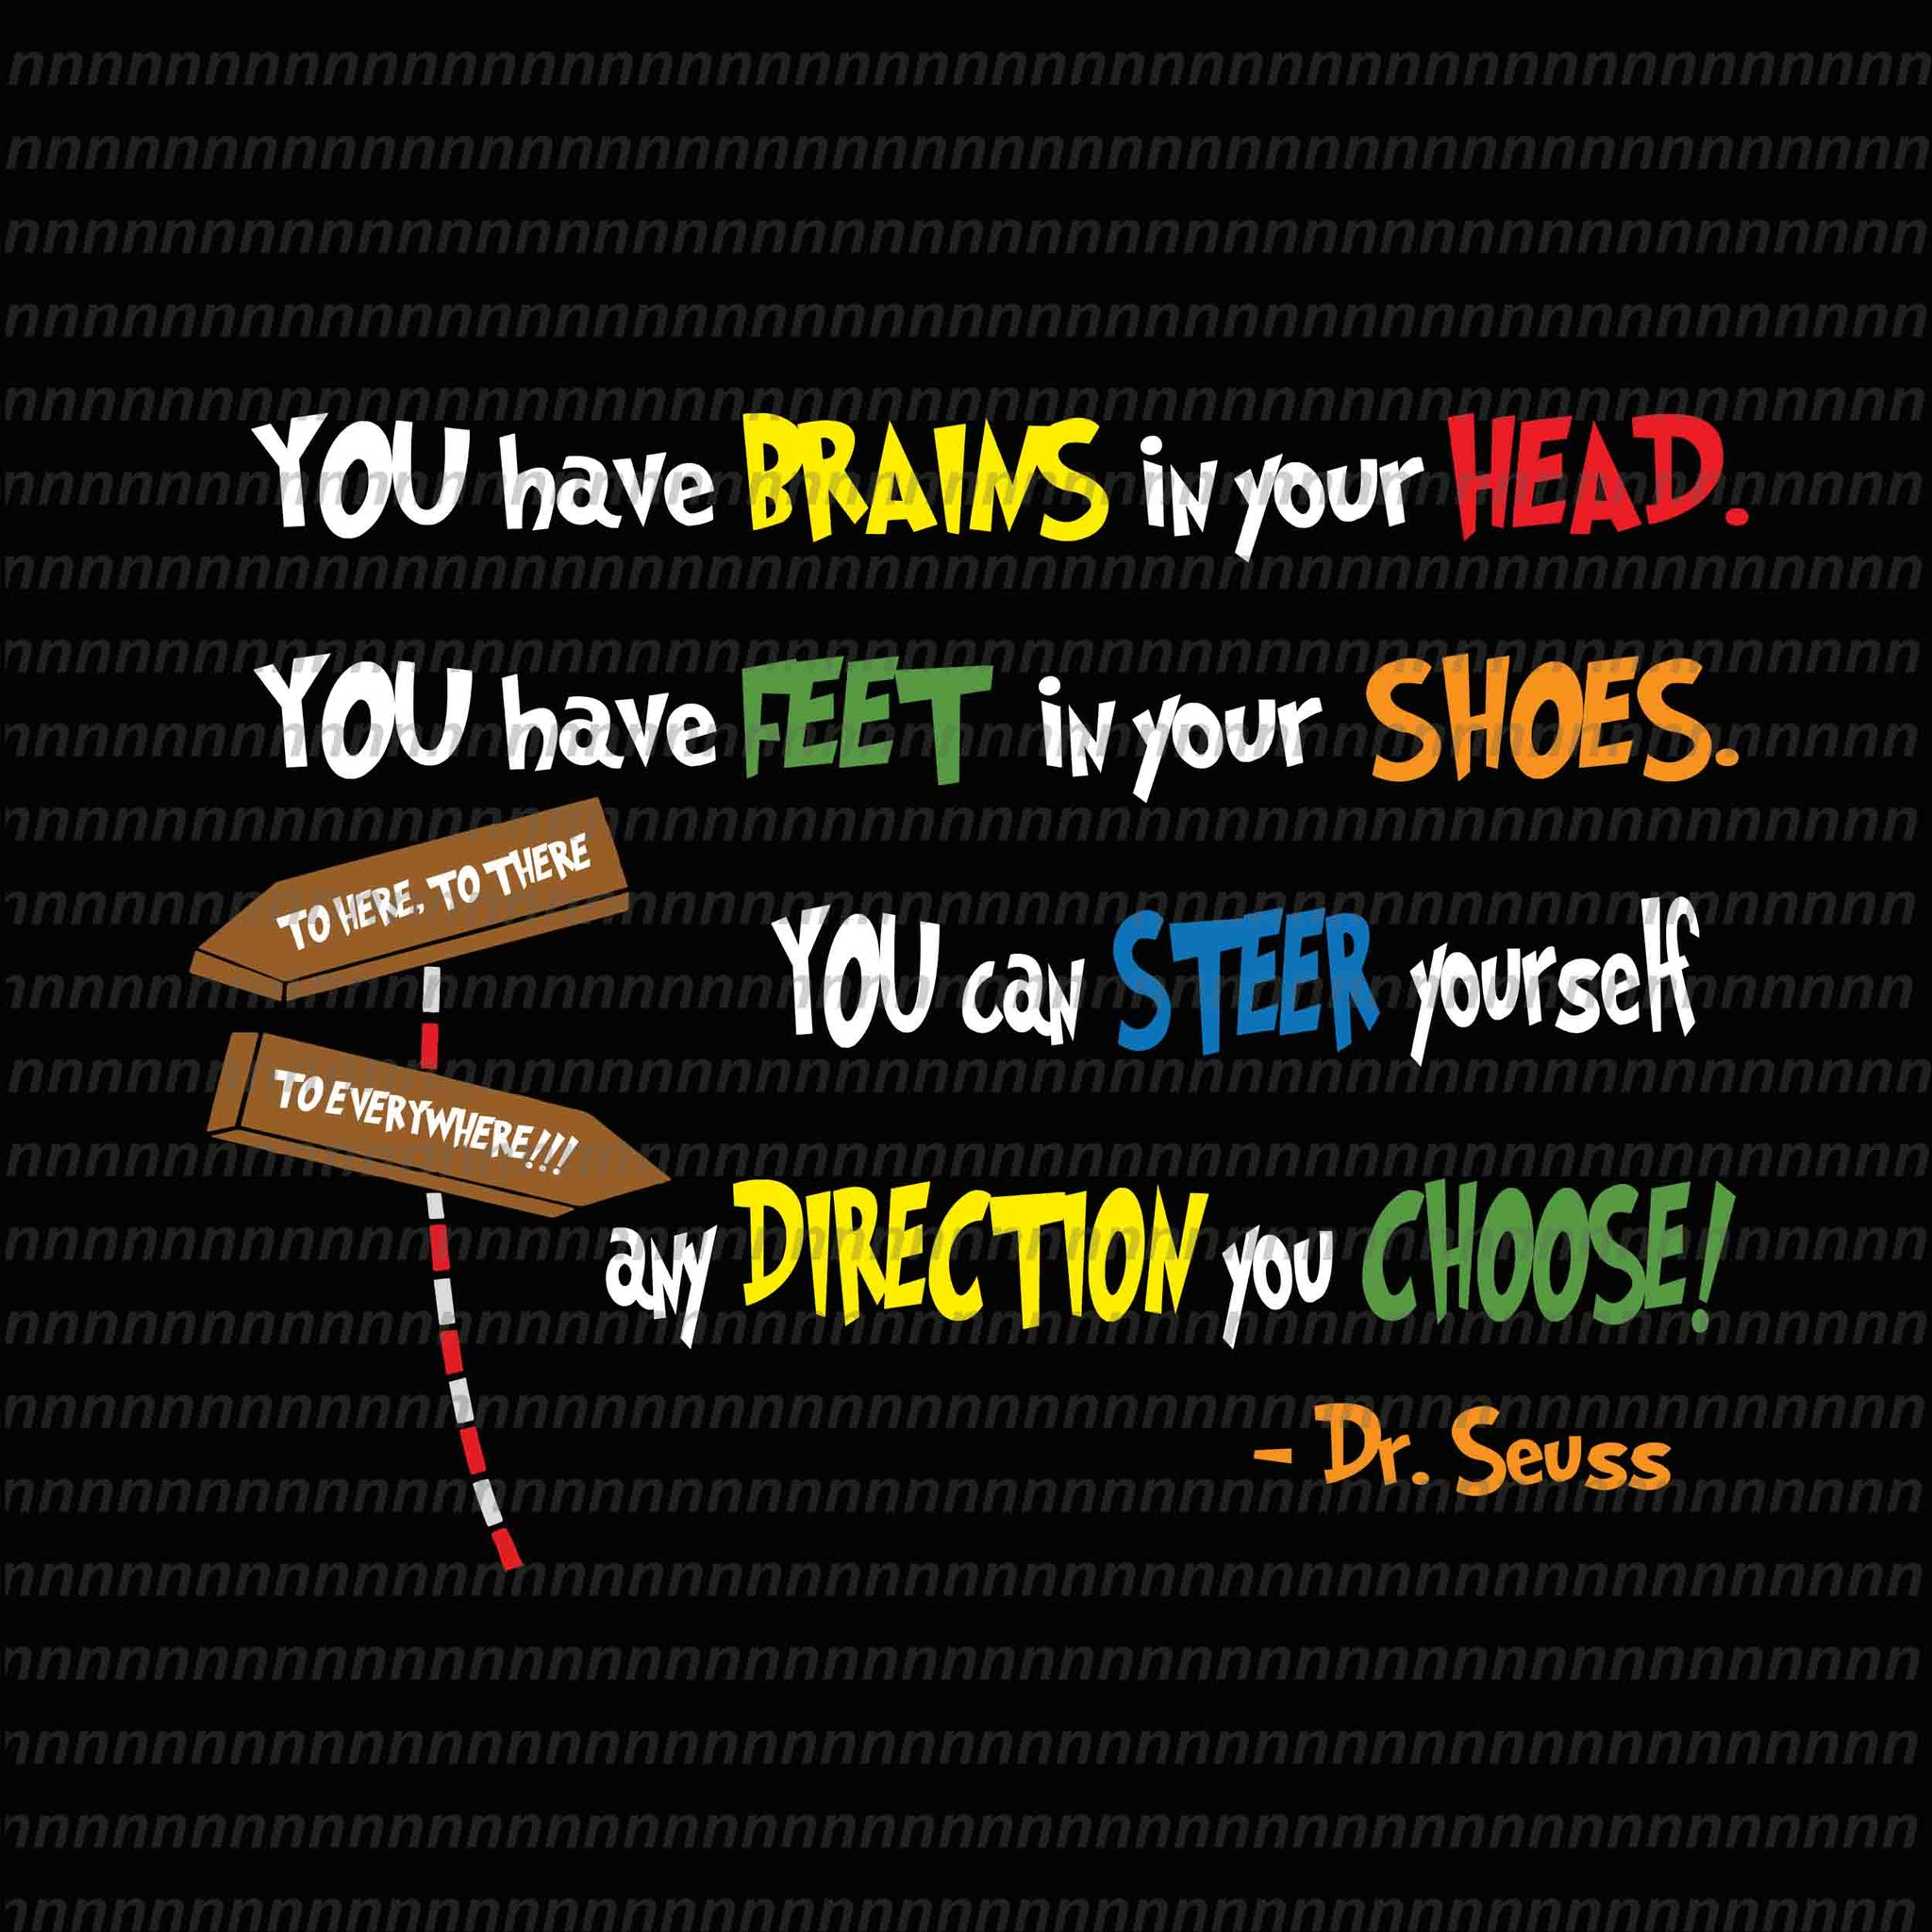 You have brains in your head, dr seuss vector, dr seuss quote, dr seuss design, Cat in the hat svg, thing 1 thing 2 thing 3, svg, png, dxf, eps file